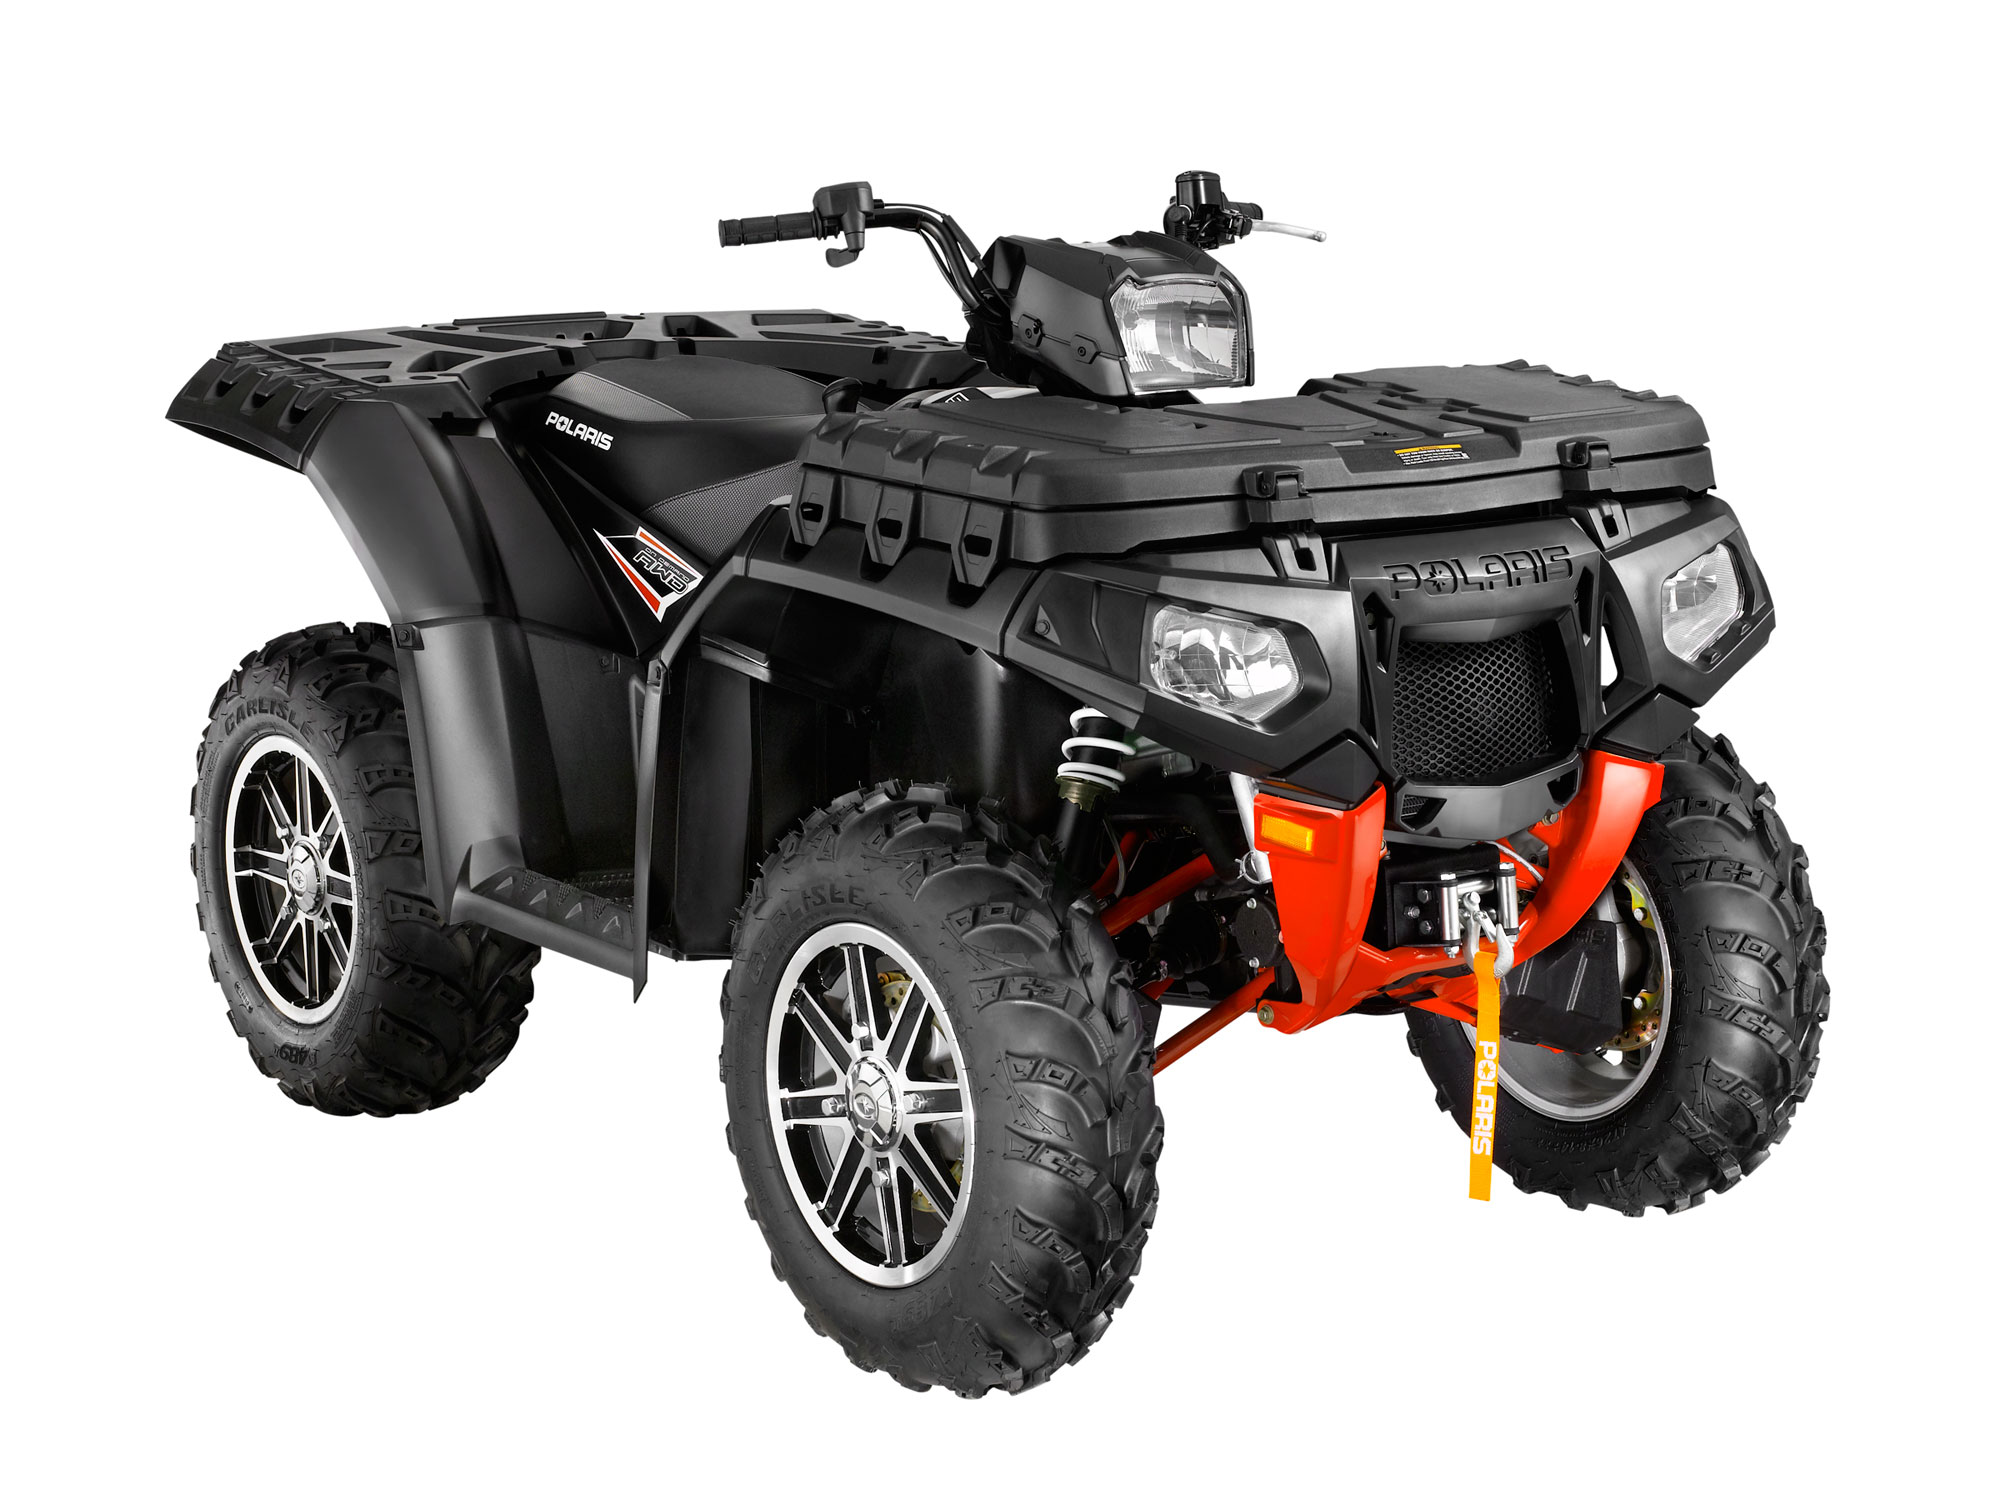 2013 polaris sportsman 550 eps black stealth le review rh totalmotorcycle com 2013 polaris sportsman 850 xp service manual 2013 polaris sportsman 850 owners manual